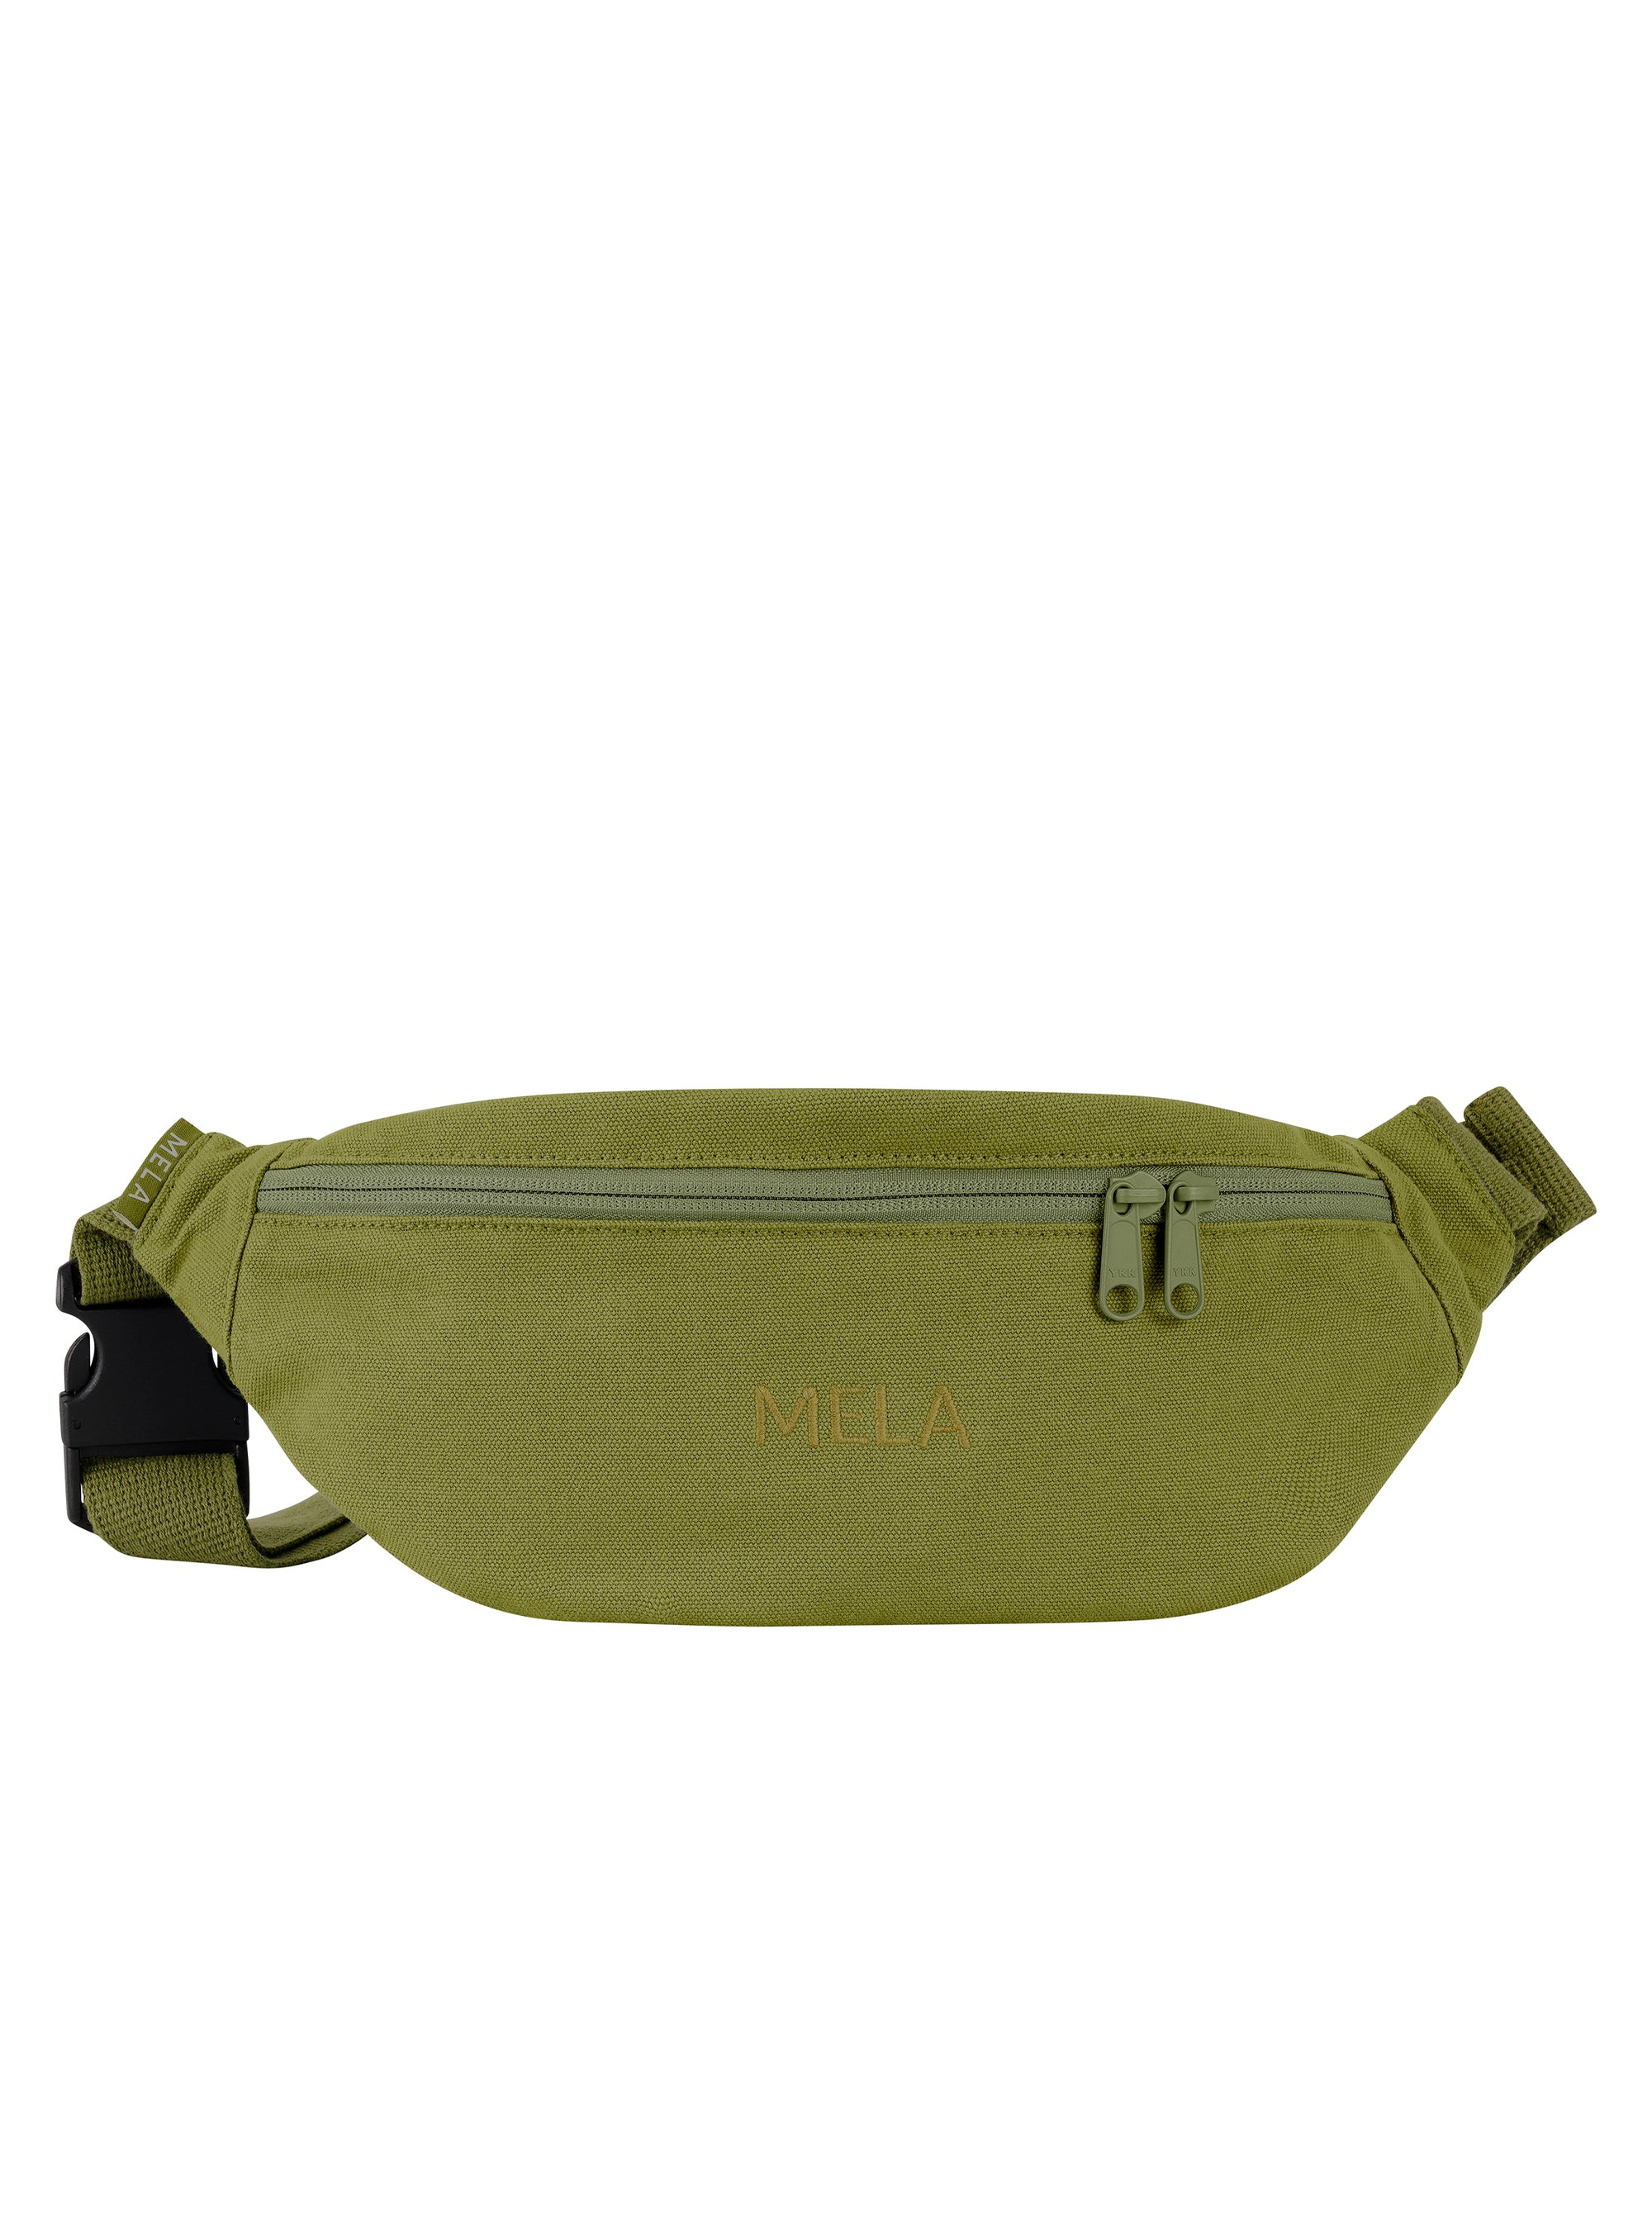 MOLGI Hip Bag Olive